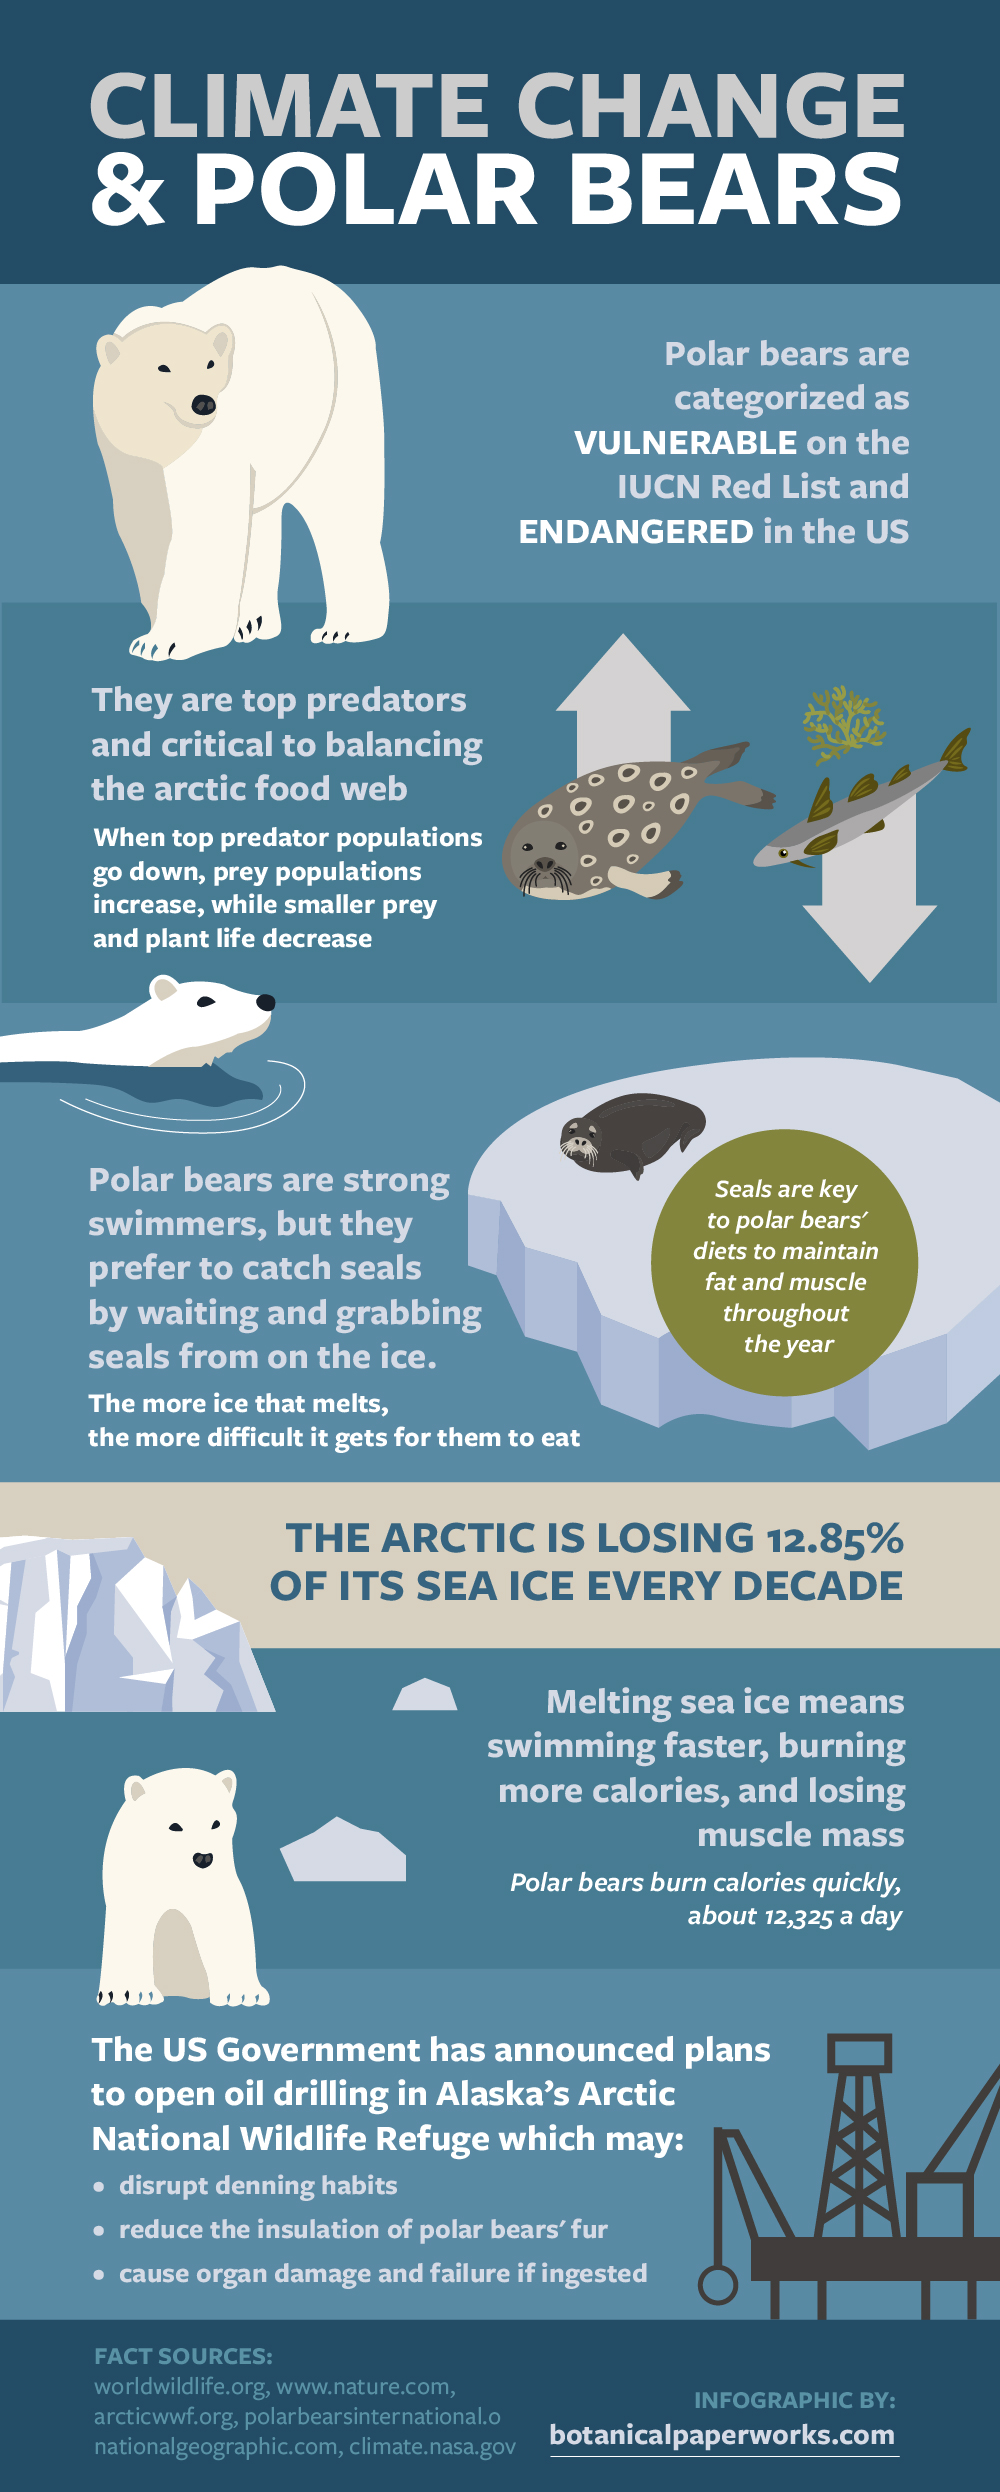 Created for International Polar Bear Day, this infographic highlights some important facts about polar bears and climate change to help raise awareness.